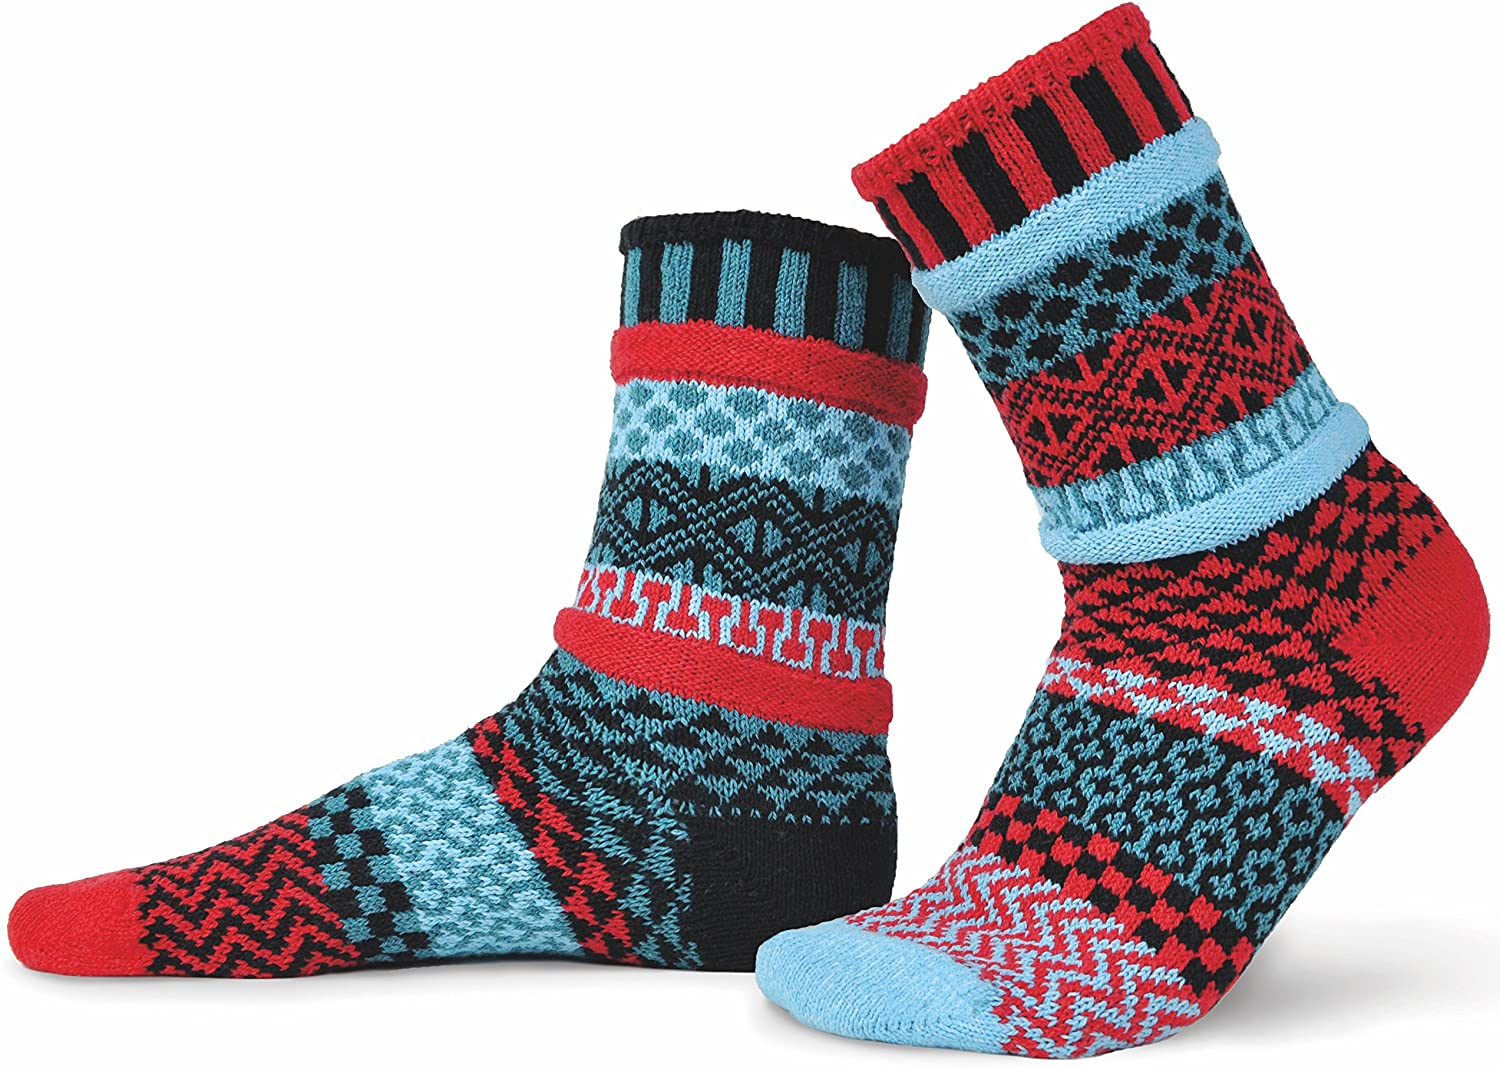 Solmate Socks - Mismatched Crew Socks; Made in USA, Mars XL